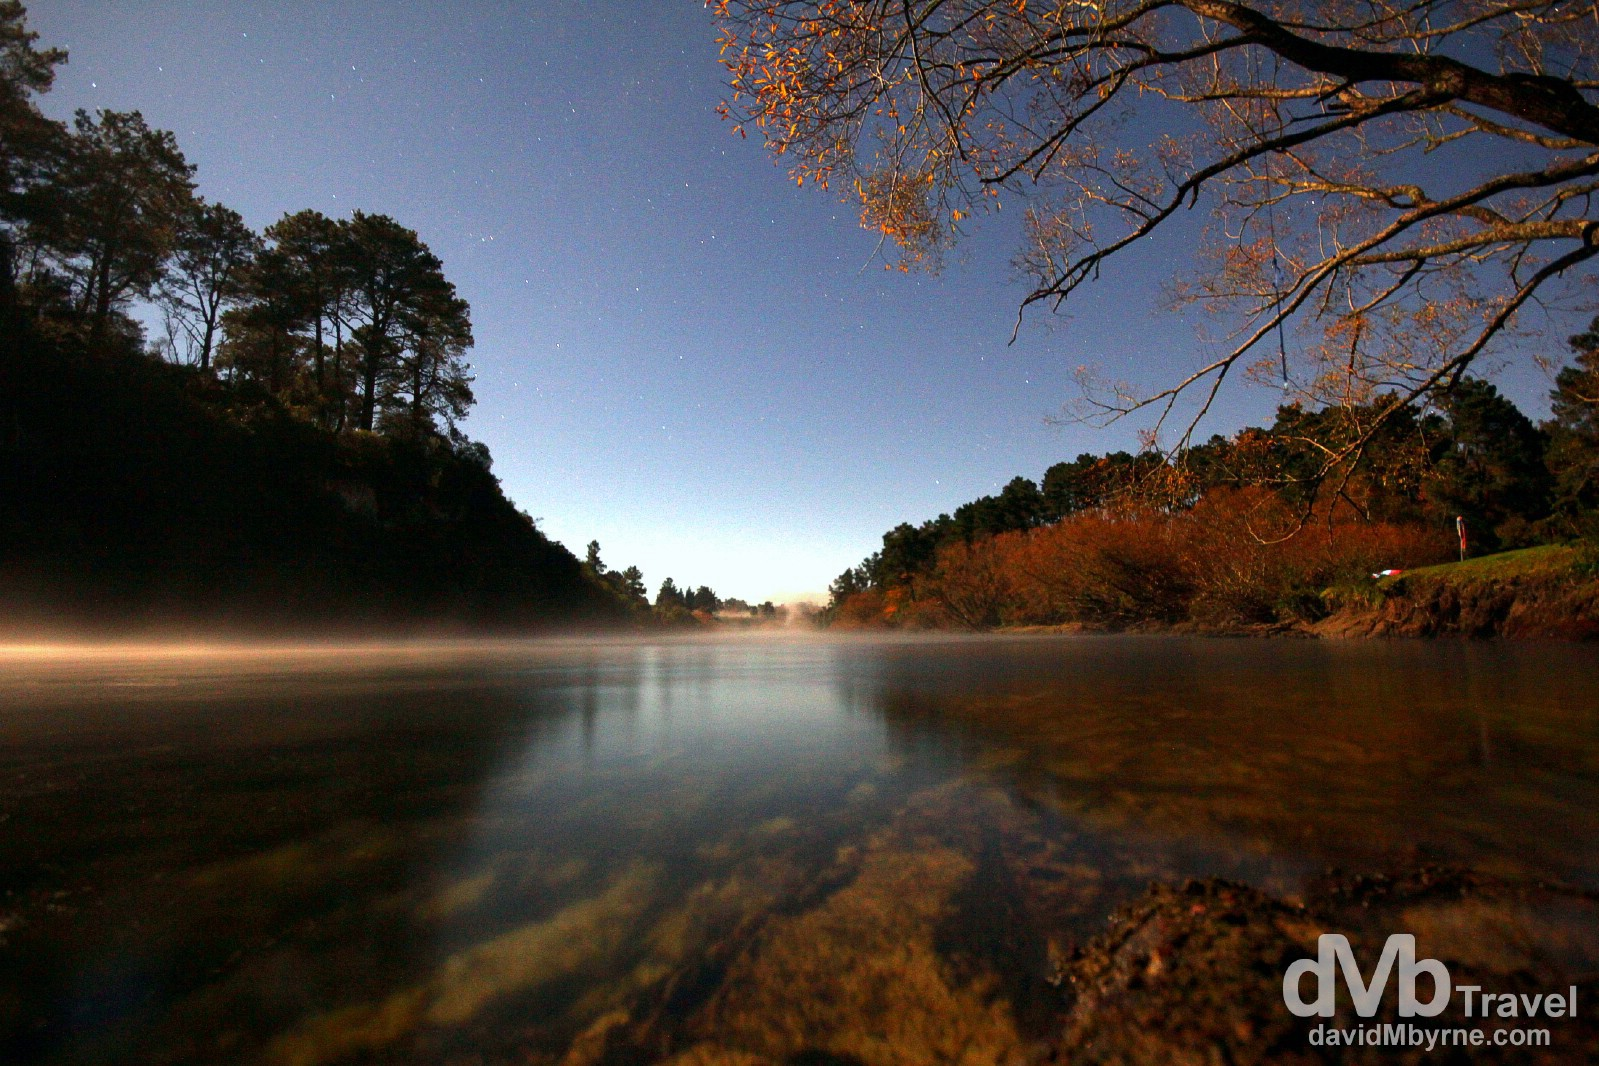 An extended exposure picture of the Waikato River, Taupo, North Island, New Zealand. May 6th 2012.